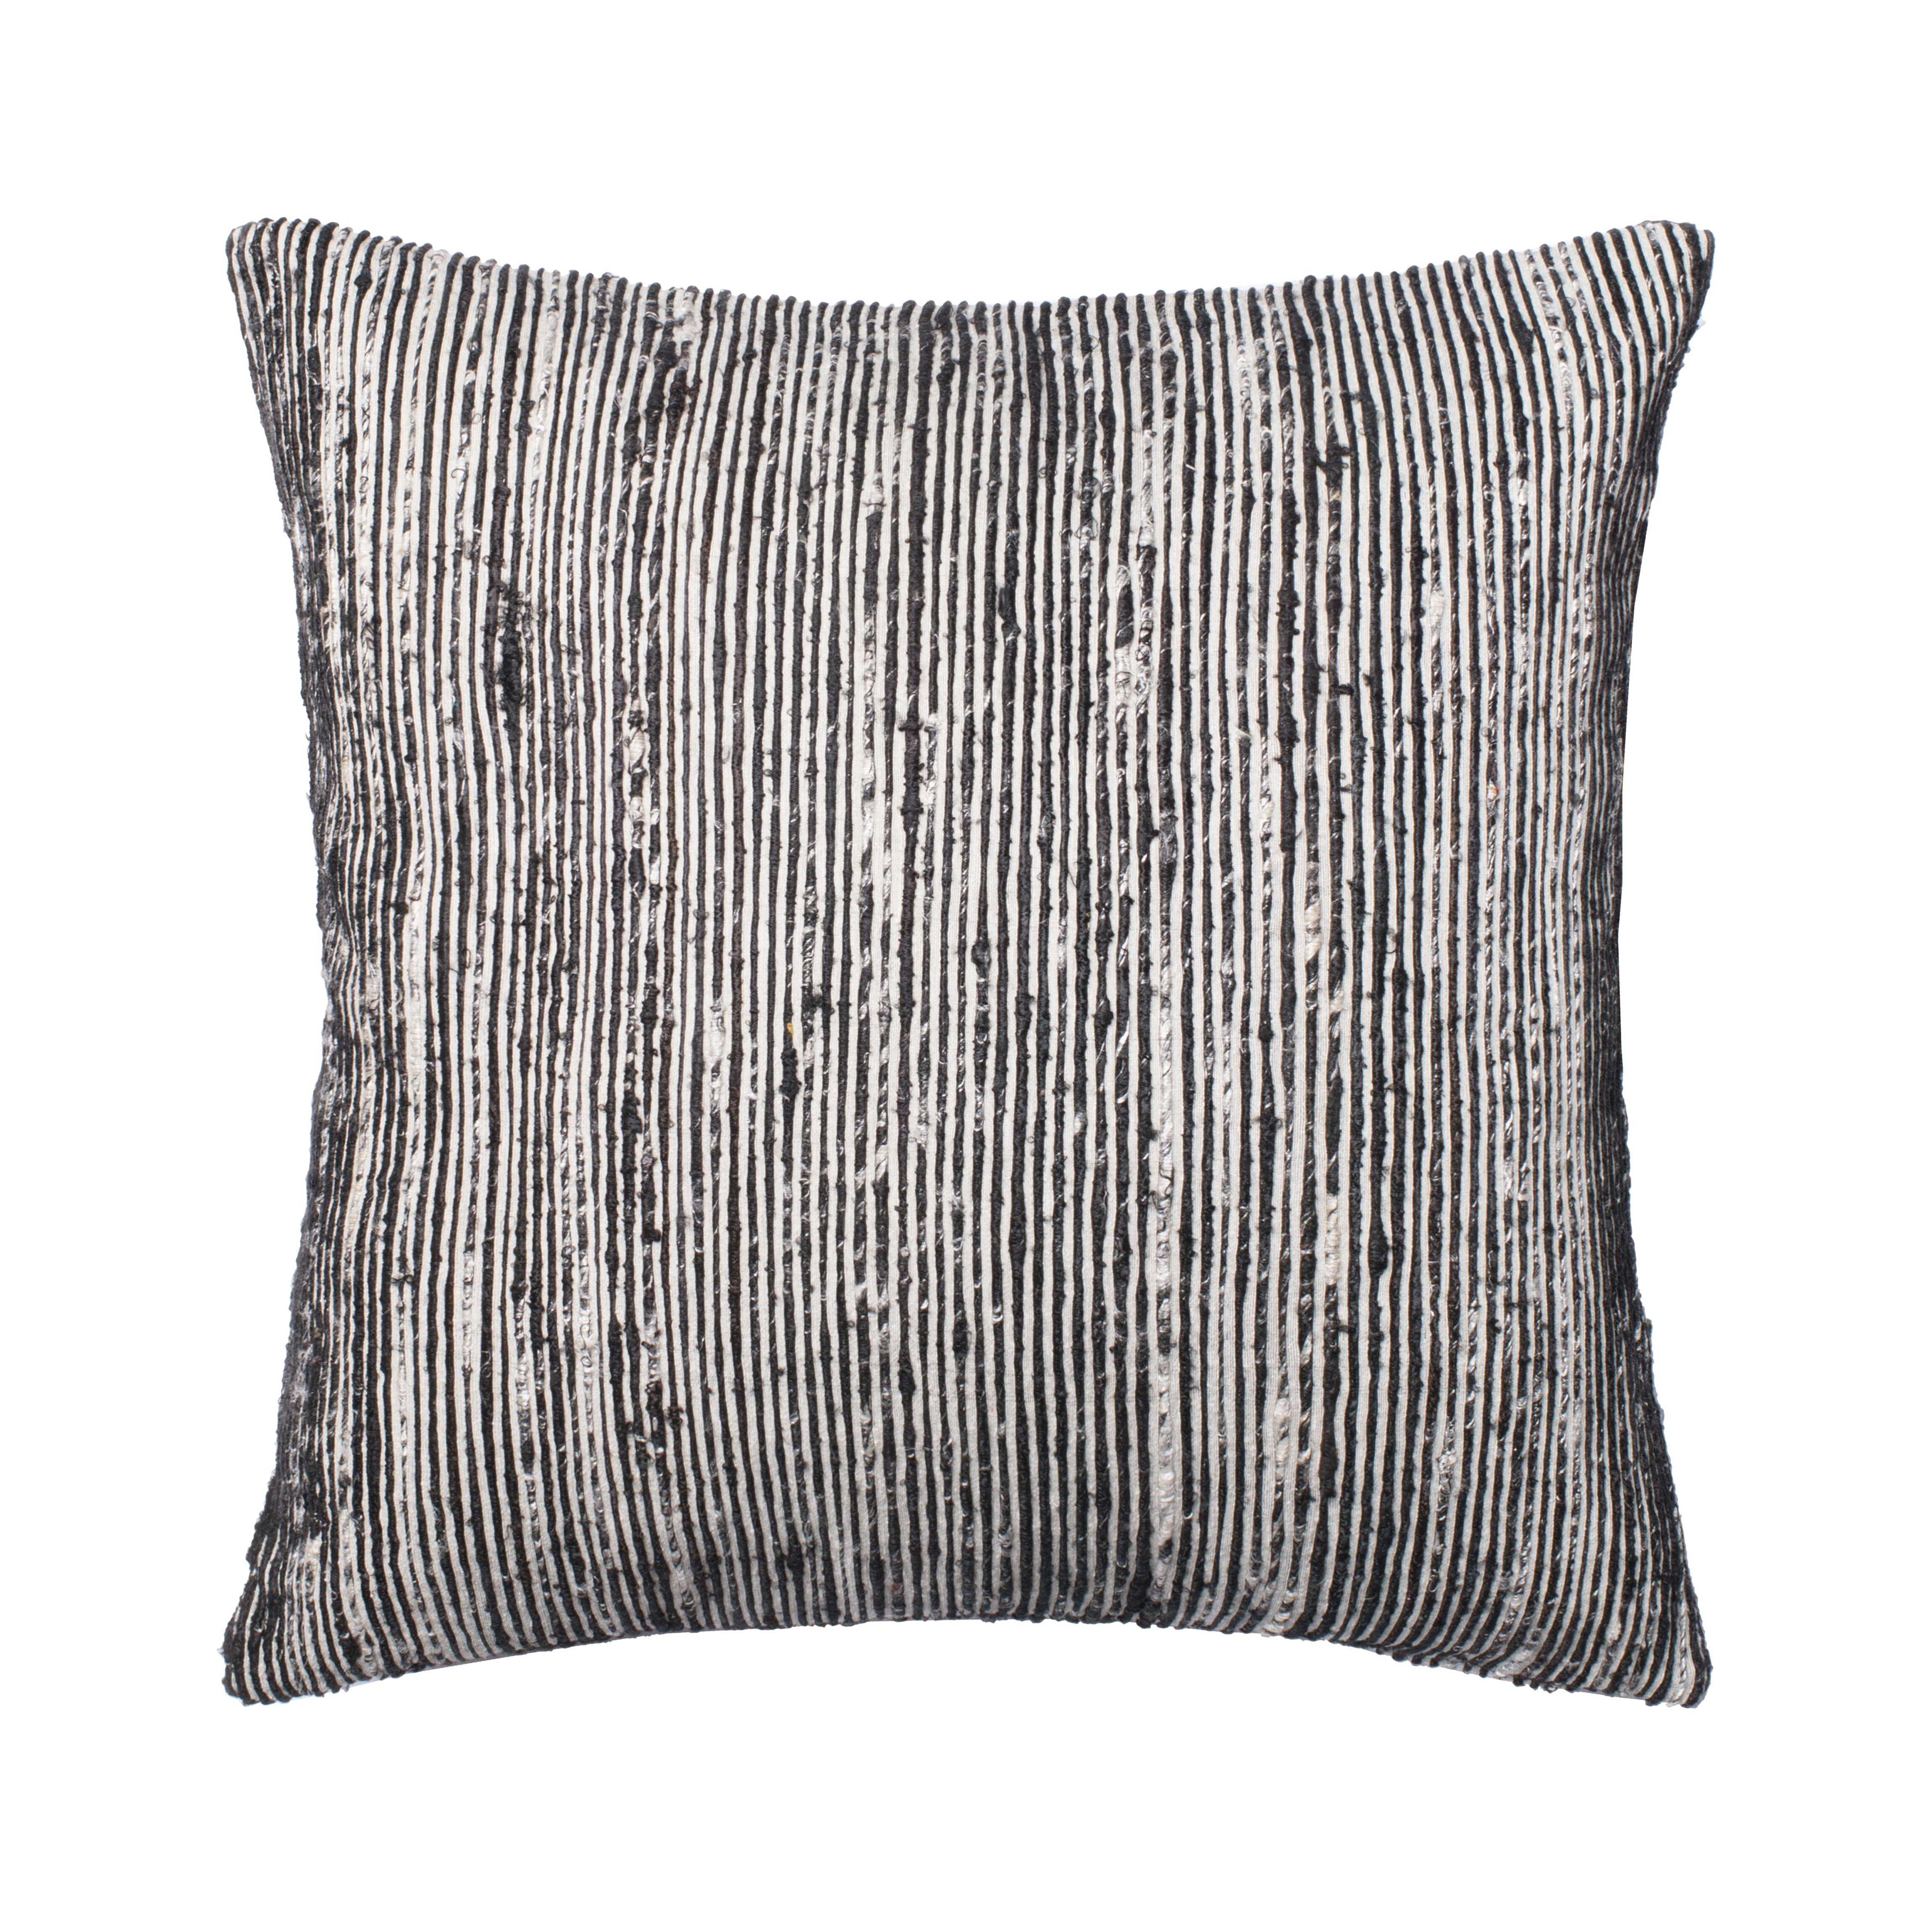 Throw Pillows And Rugs : Loloi Rugs Stripe Throw Pillow & Reviews Wayfair